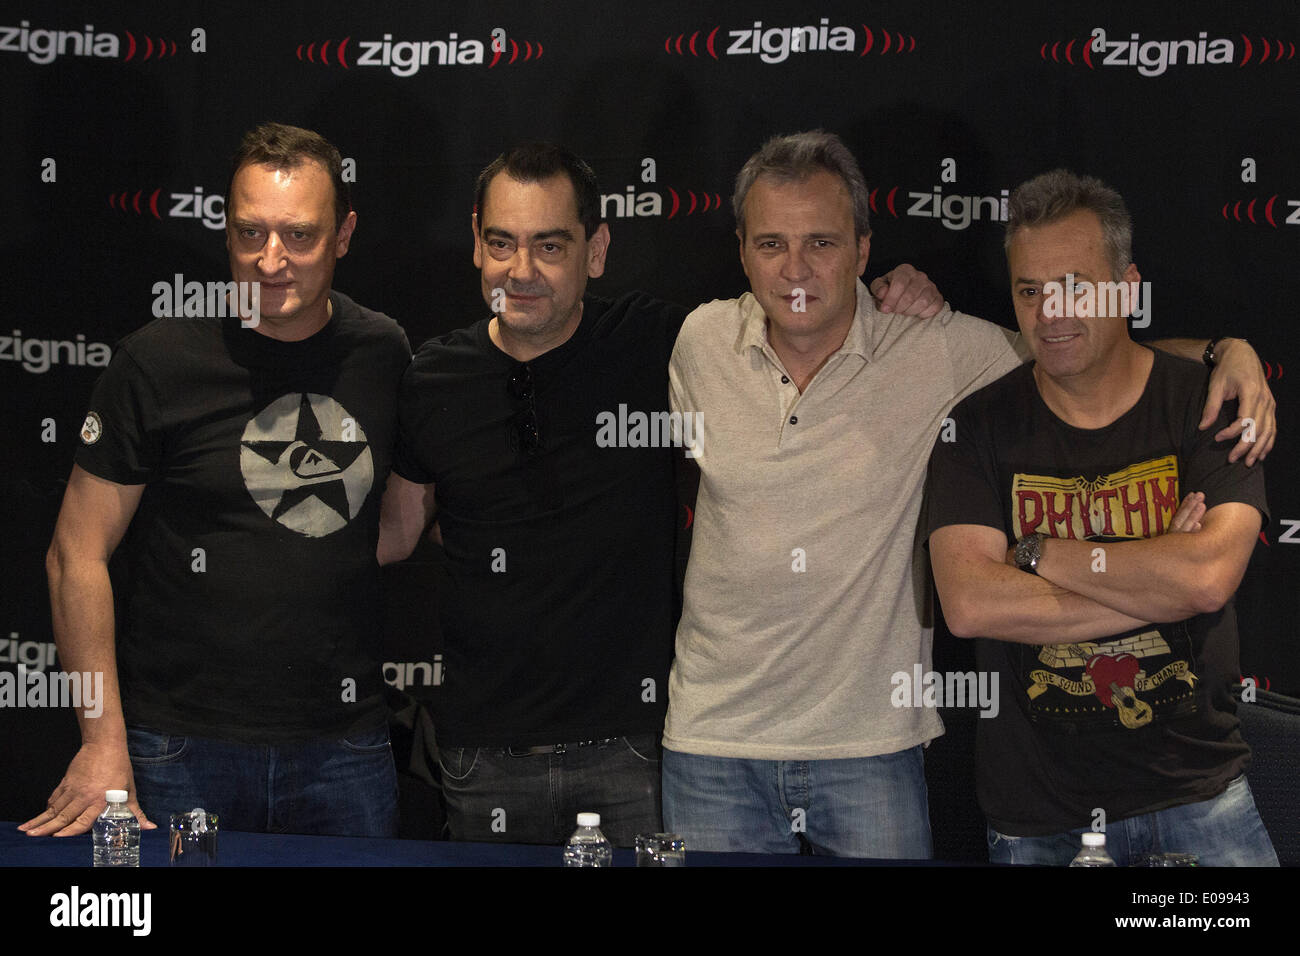 Mexico City, Mexico. 6th May, 2014. Dani Mezquita, Javi Molina, David Summers and Rafa Gutierrez(From L to R) from Spanich pop-rock group Hombres G participate in a press conference to announce their upcoming concert tour, in Mexico City, capital of Mexico, on May 6, 2014. Hombres G group will realize a concert tour along 8 cities in Mexico. © Alejandro Ayala/Xinhua/Alamy Live News - Stock Image